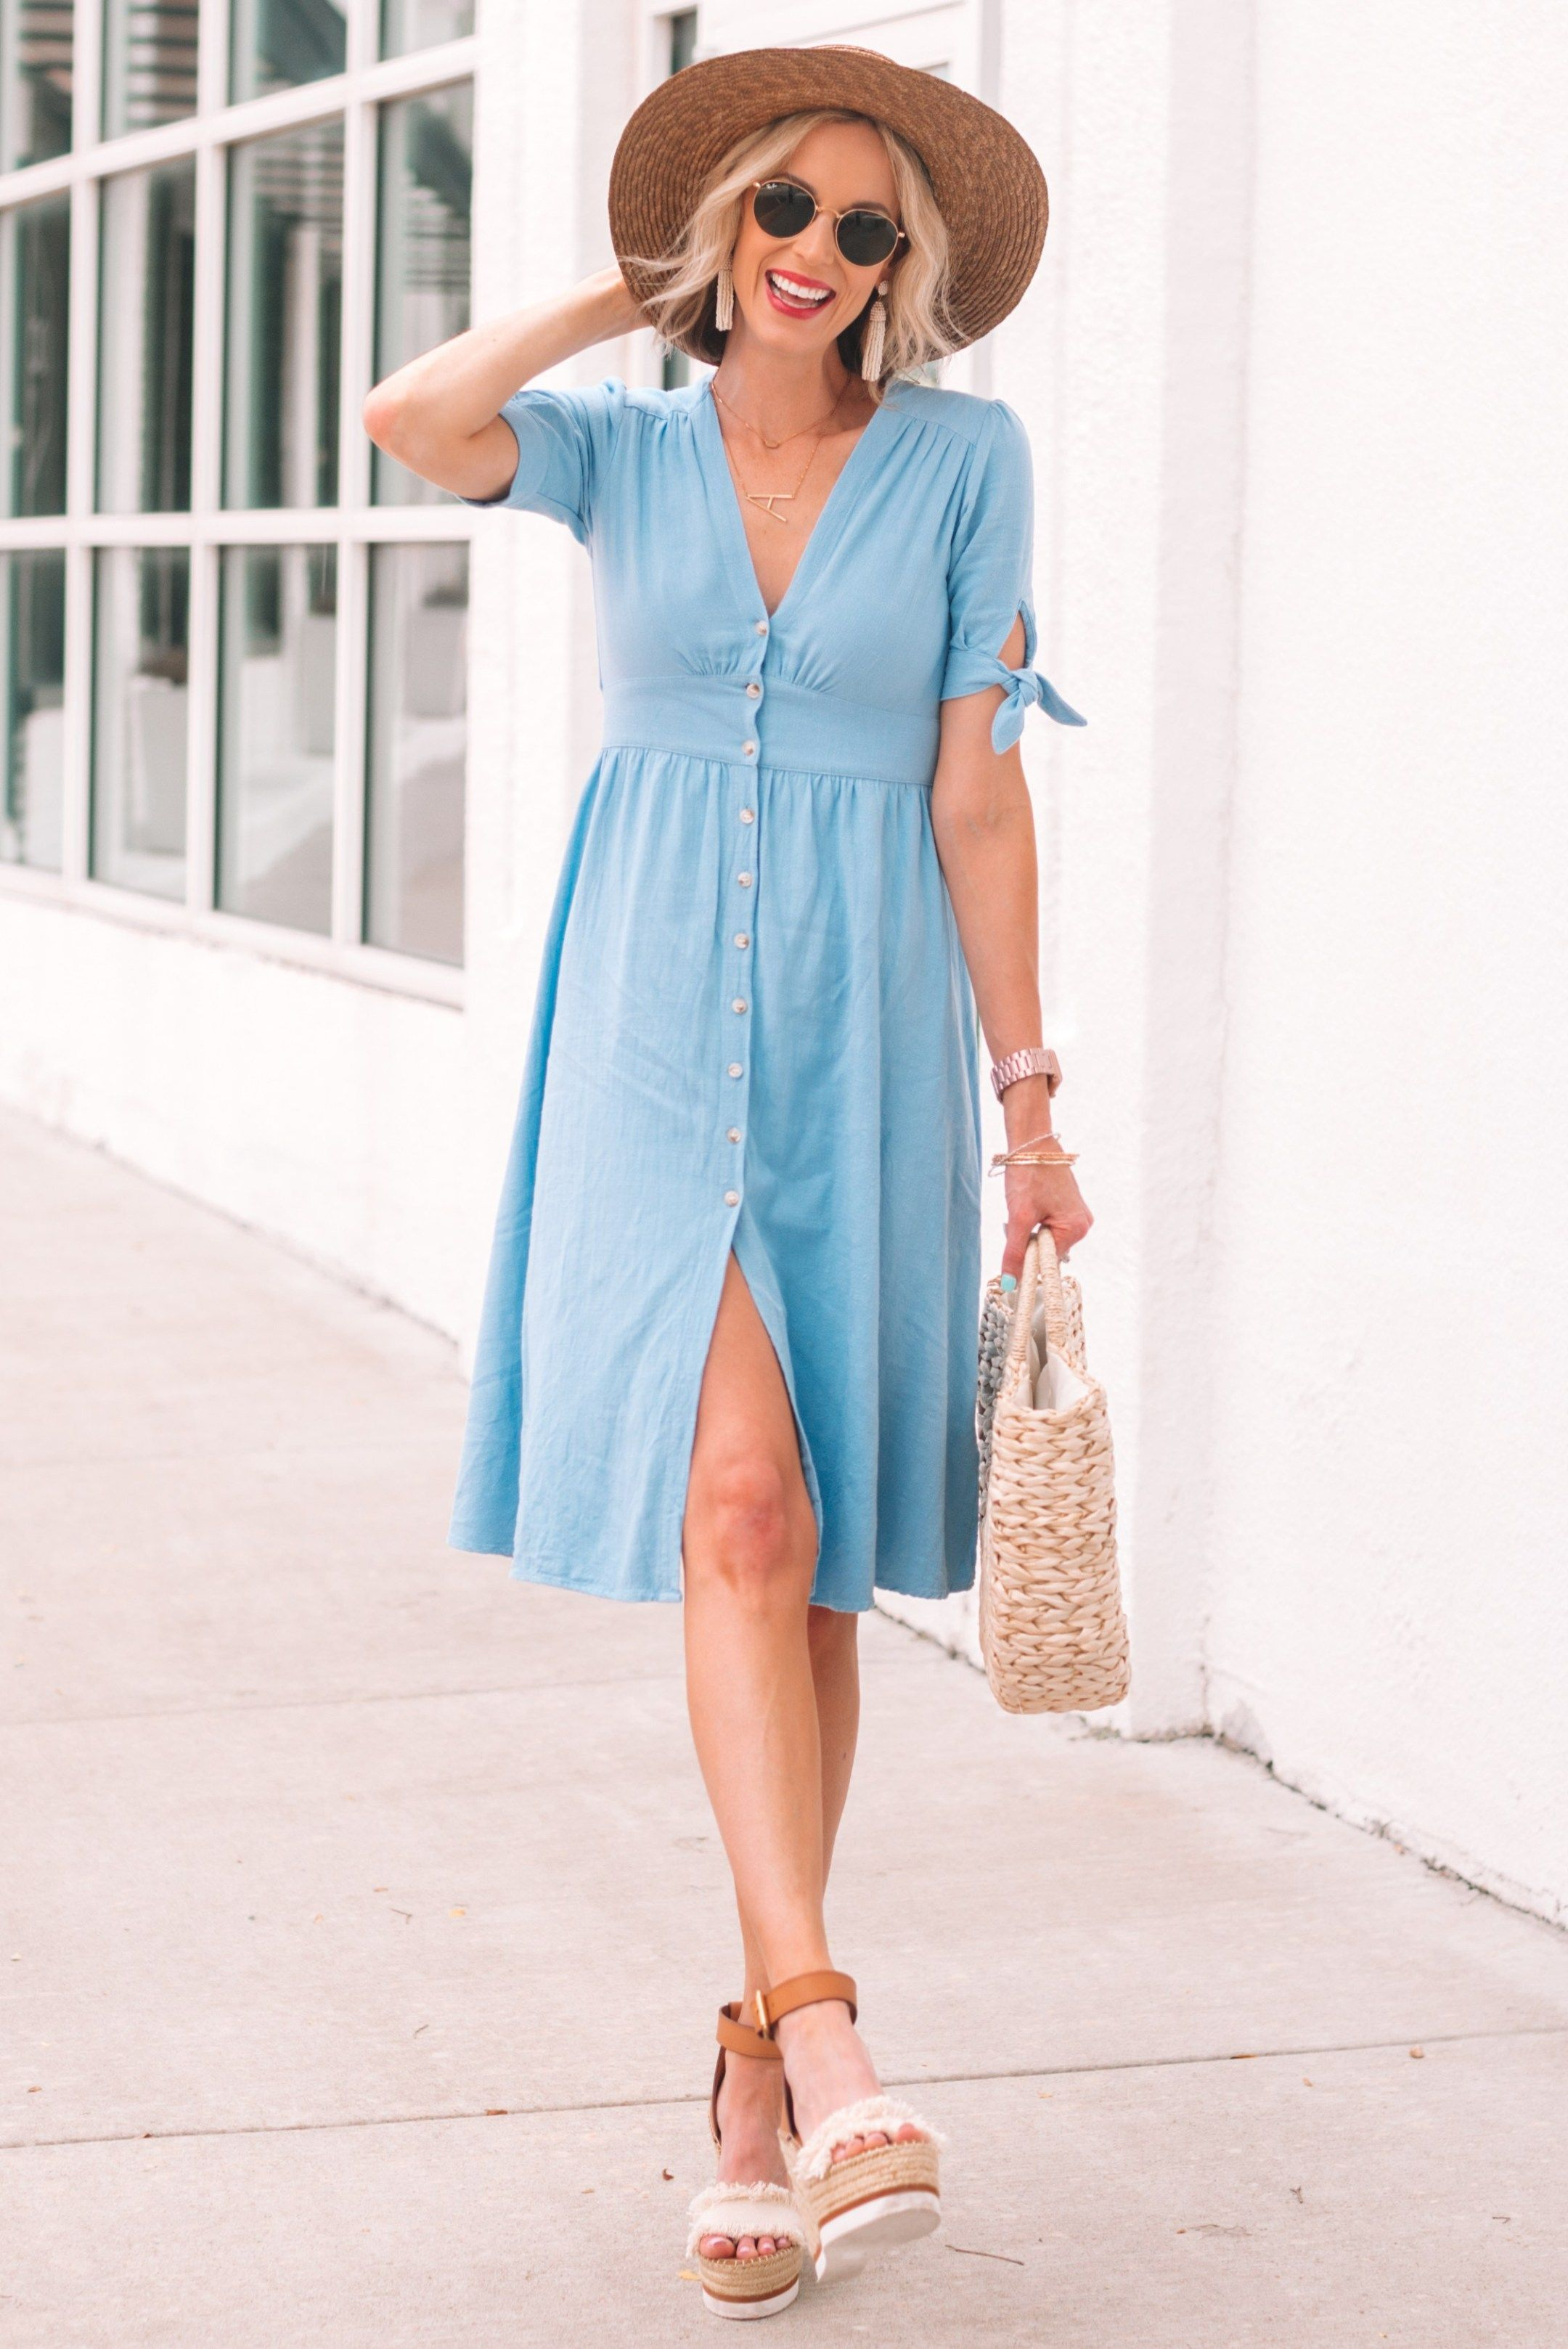 Blue Button Front Midi Dress Straight A Style Wedding Guest Dress Summer Wedding Guest Dress Women Wedding Guest Dresses [ 3236 x 2160 Pixel ]